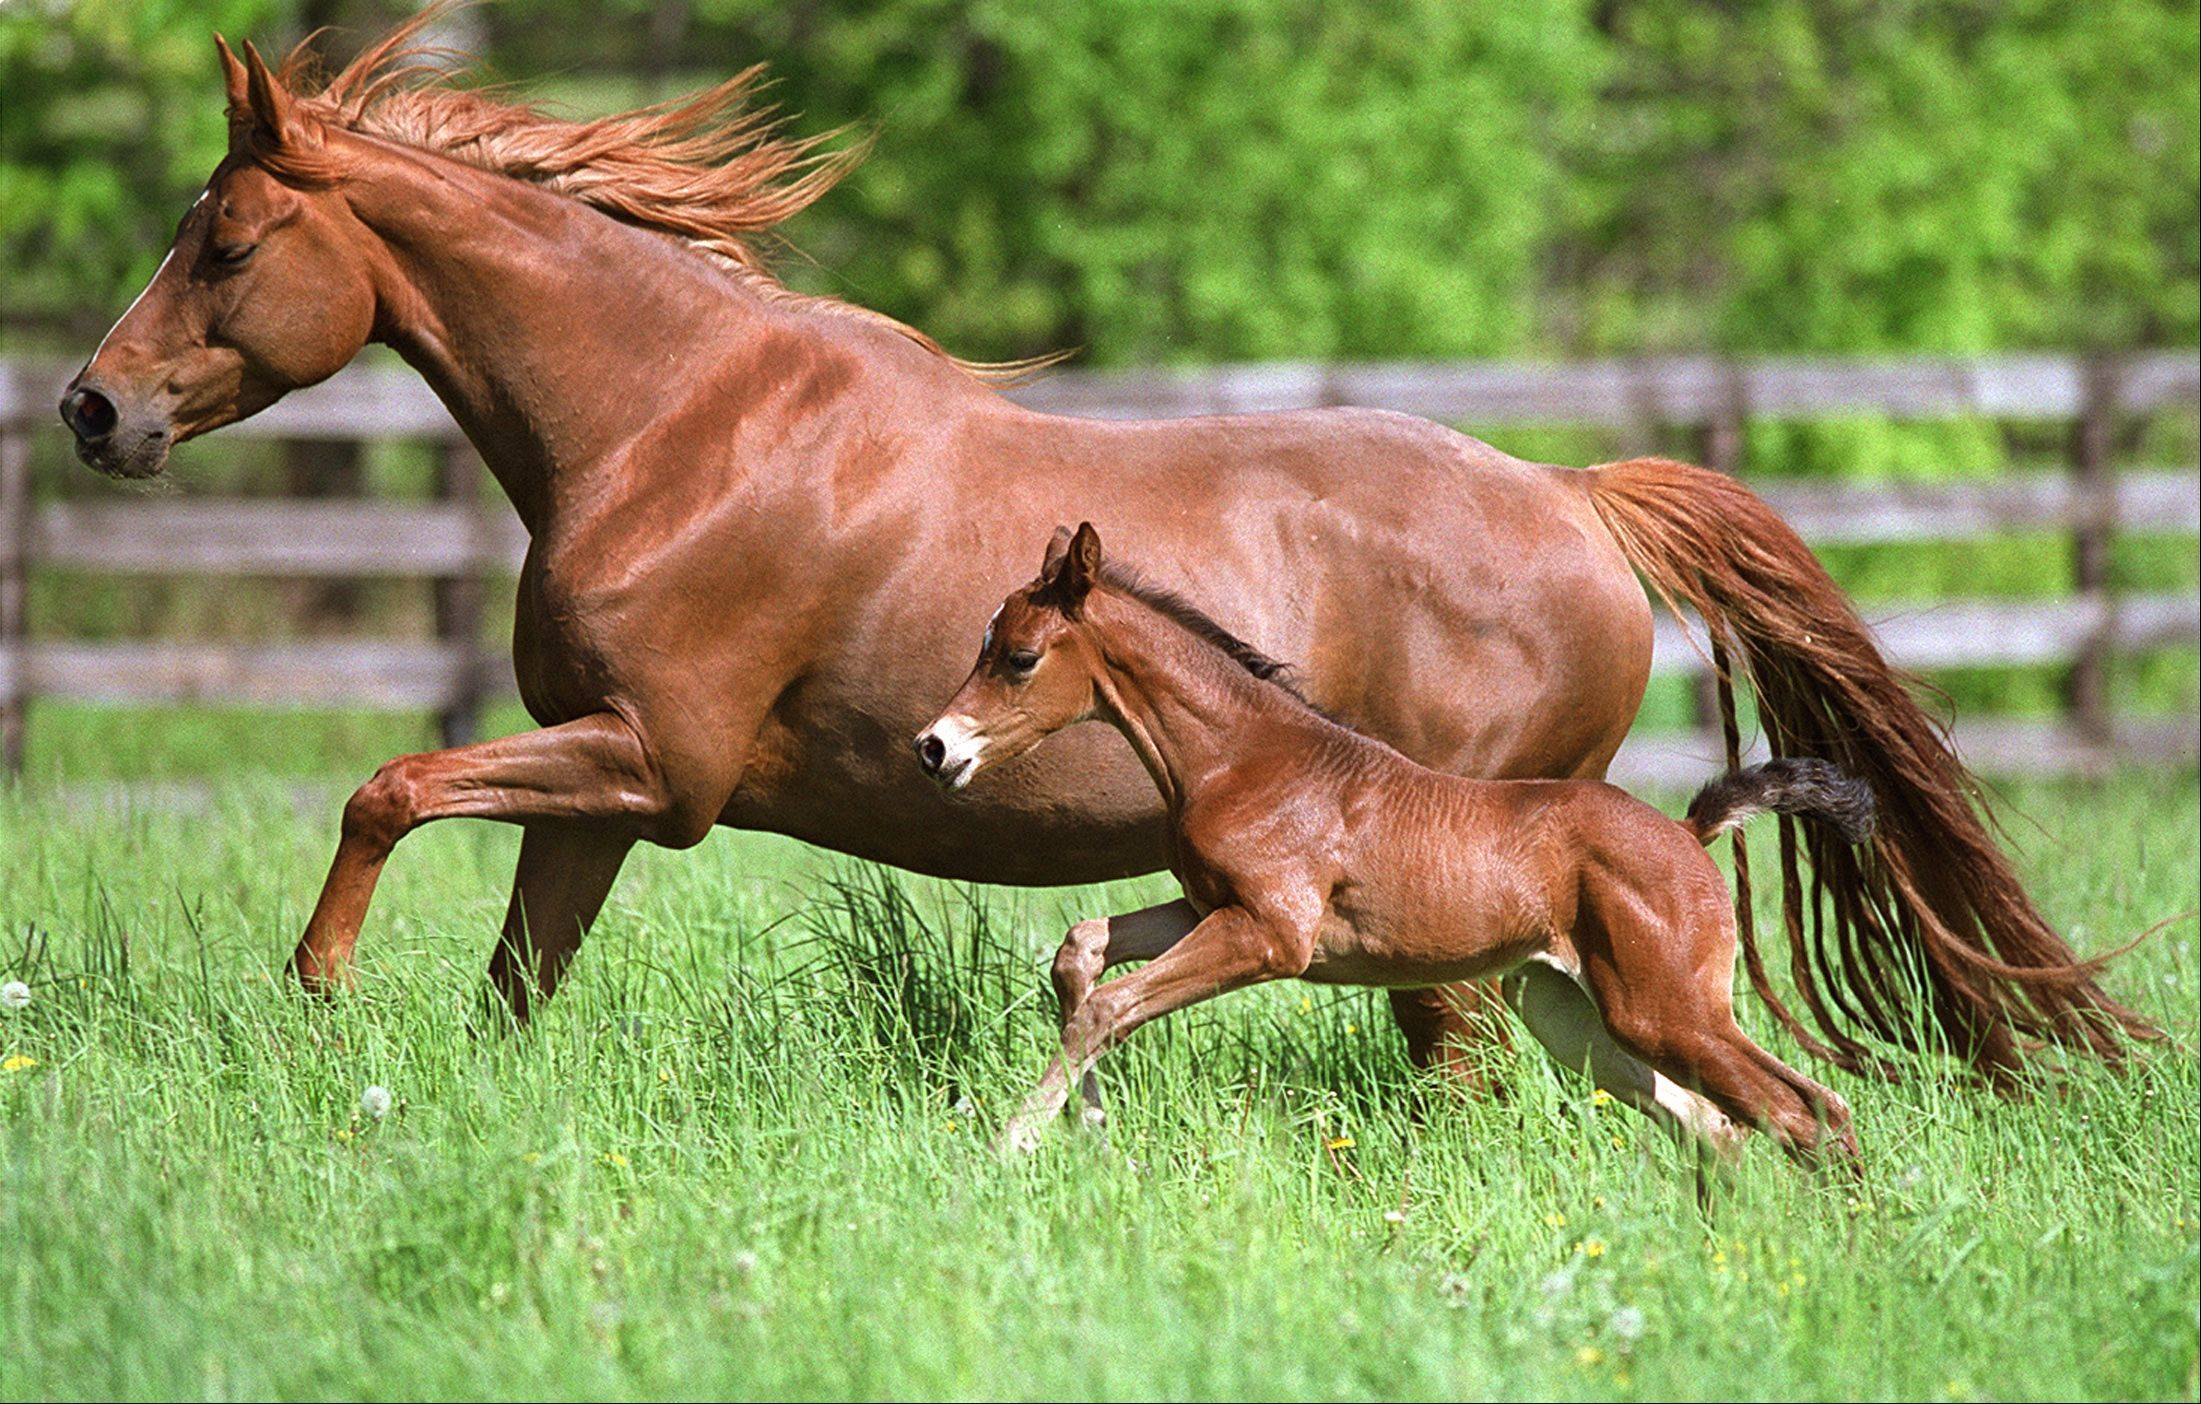 Laura Stoecker/lstoecker@dailyherald.com, 2003Nadja and her foal run through a grassy pasture at Rolling Oaks Farm in Elgin. Foal born in May.